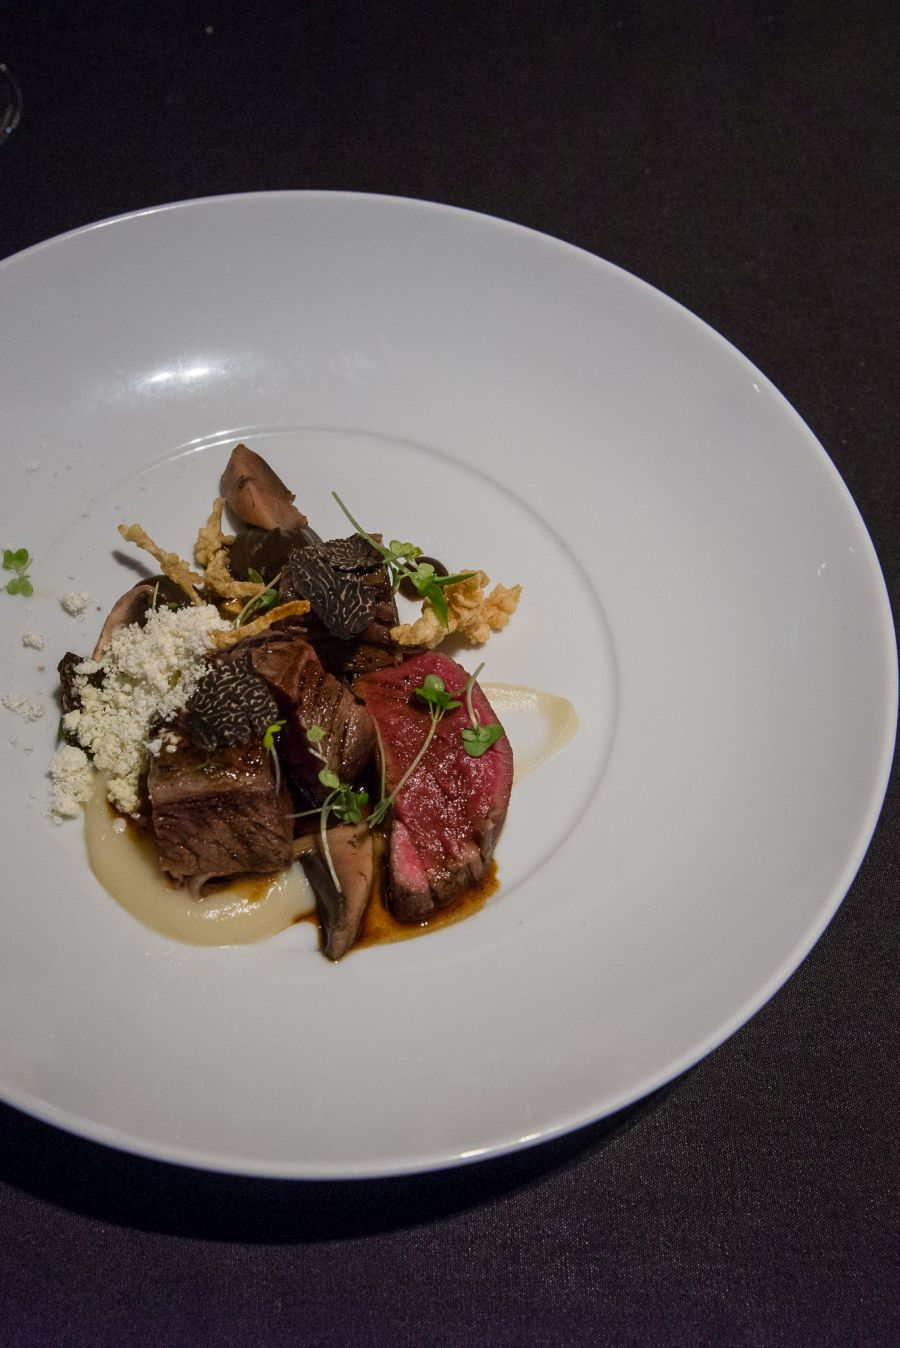 Braised beef short ribs, sous vide fillet with celeriac-forest mushroom textures, The George